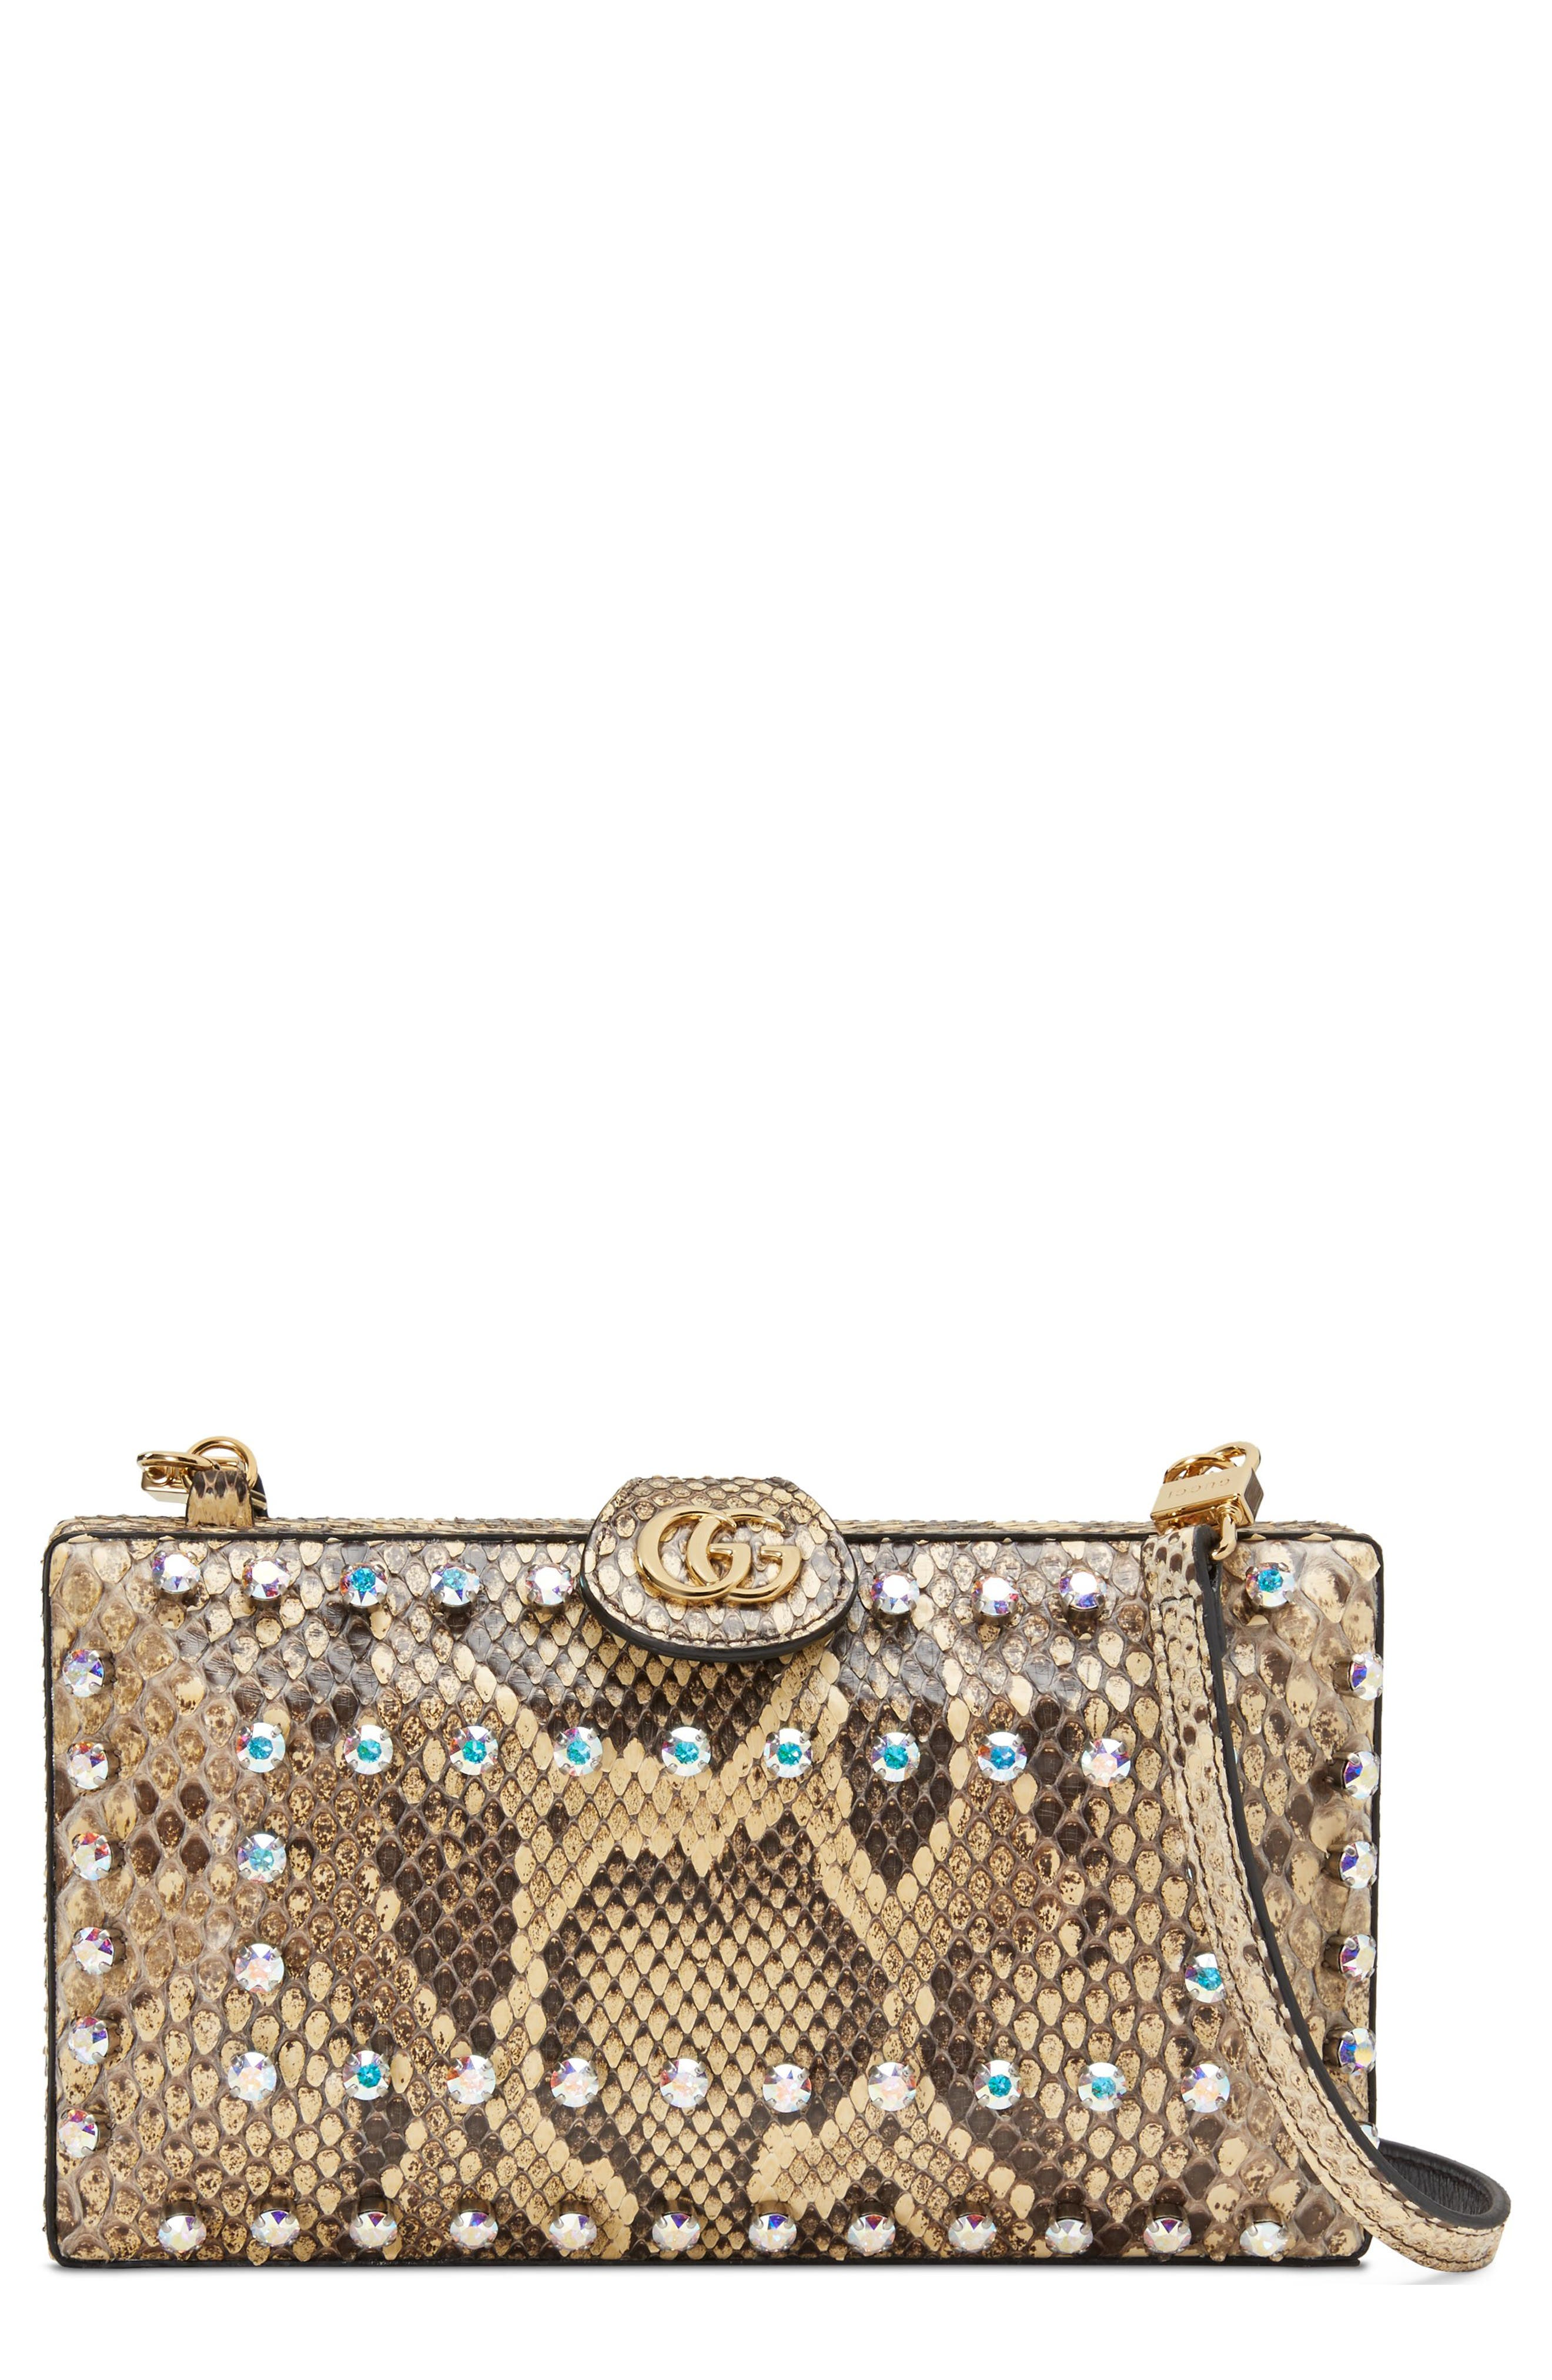 Broadway Genuine Python Minaudière,                         Main,                         color, BEIGE/ NATURAL YELLOW/ CRYSTAL